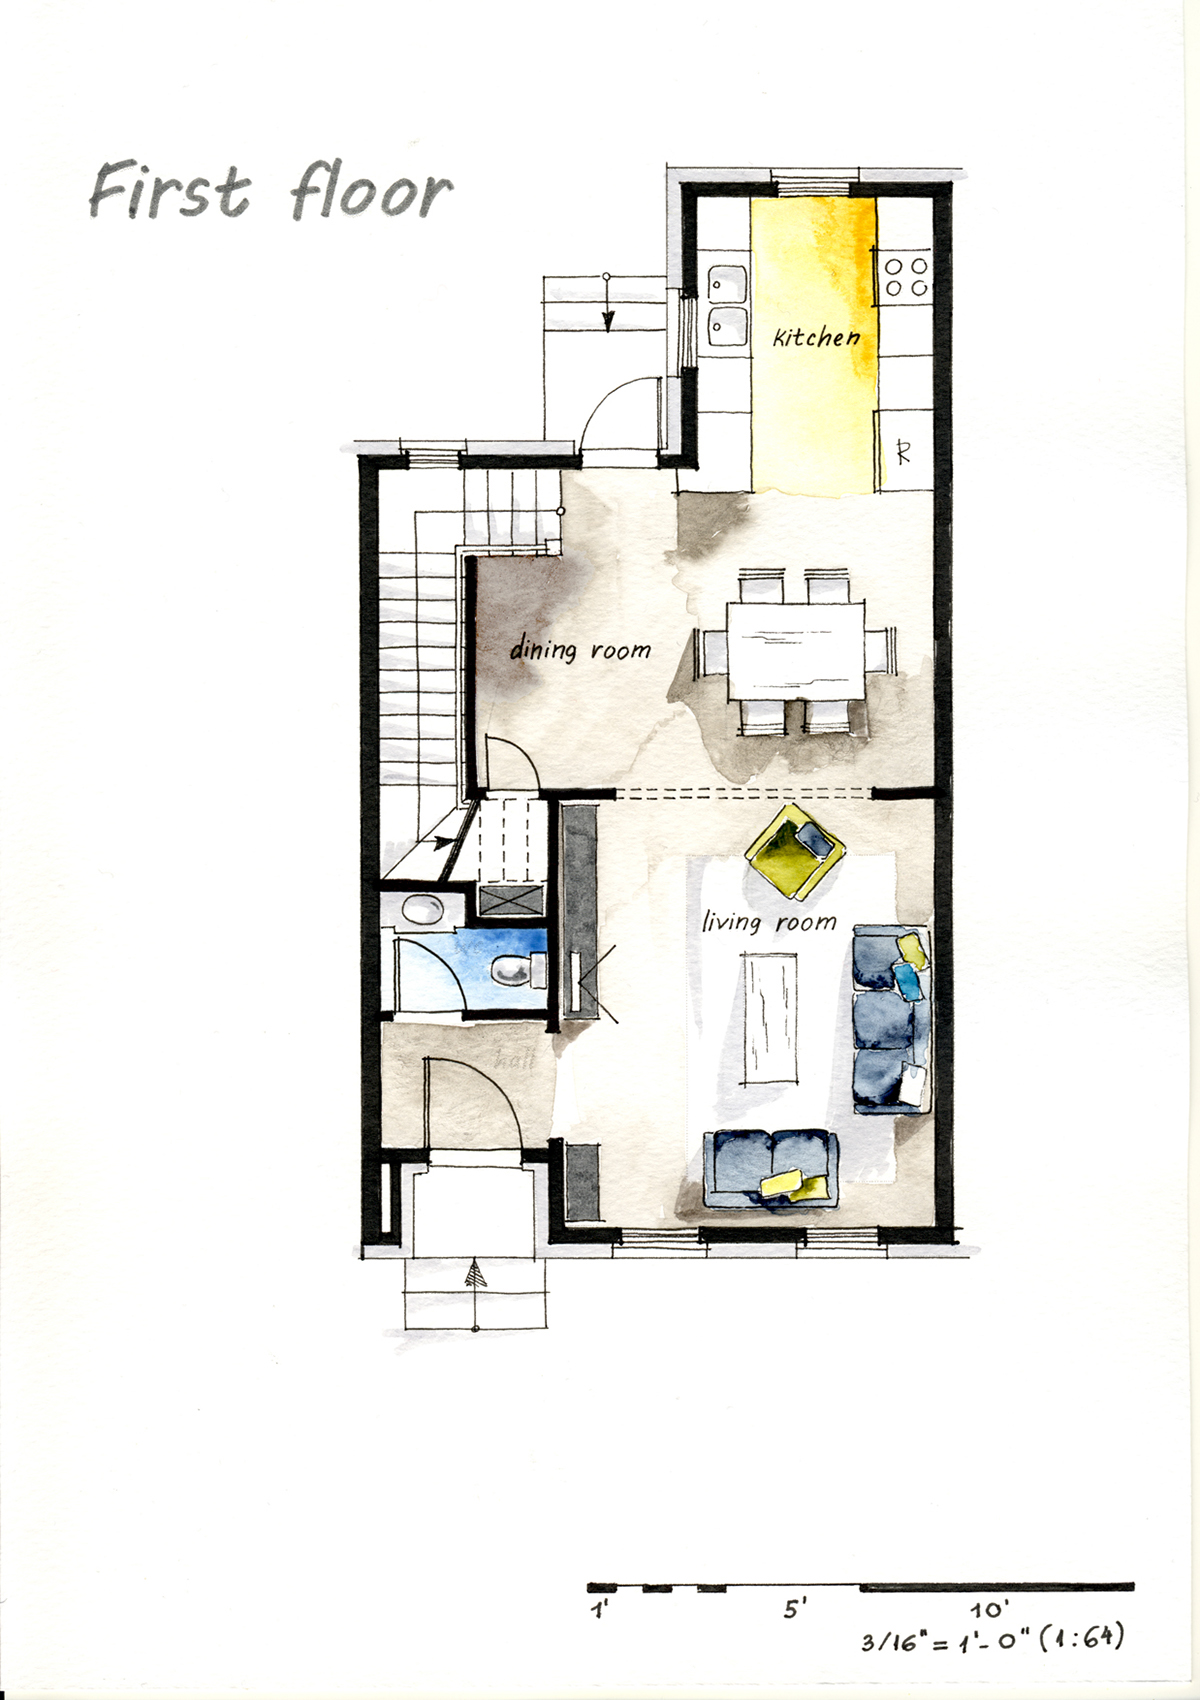 Real estate watercolor 2d floor plans part 2 on behance for Real estate floor plans